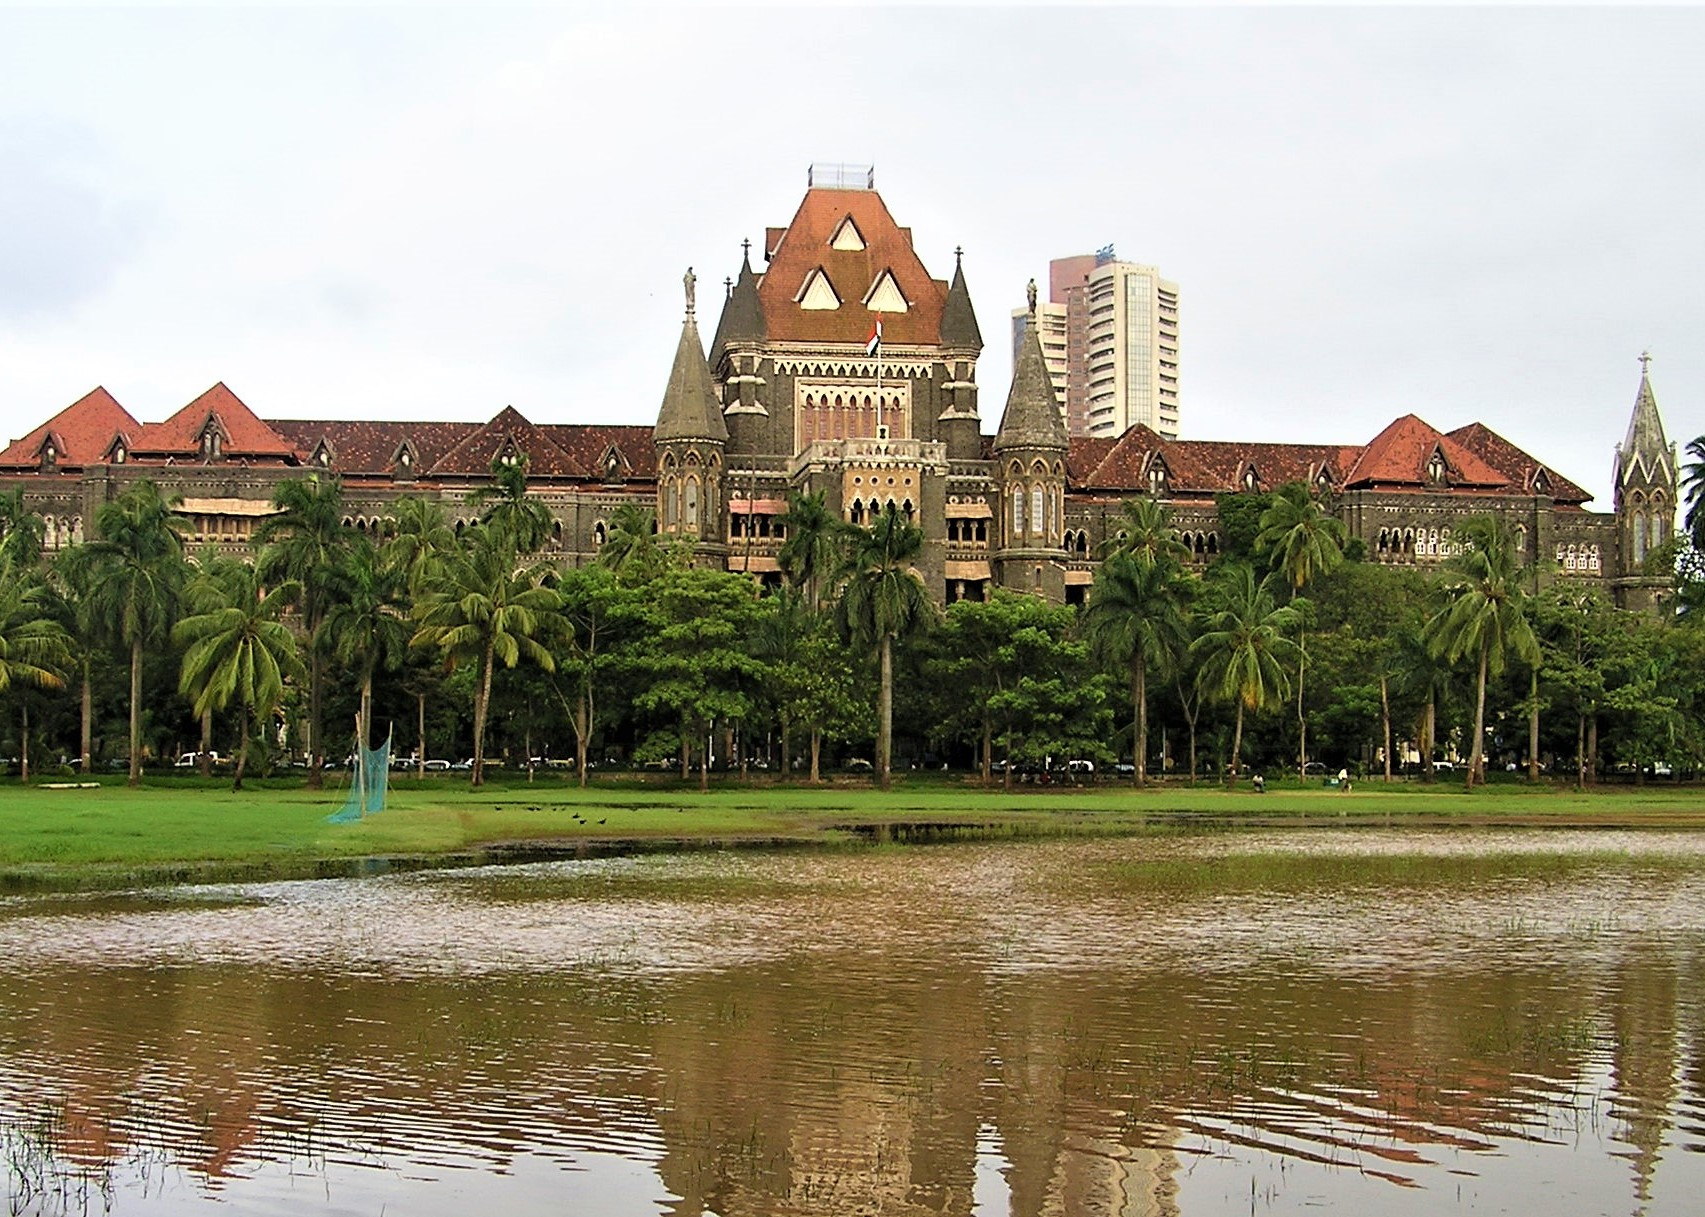 Woman always knows man's intention,' Bombay HC